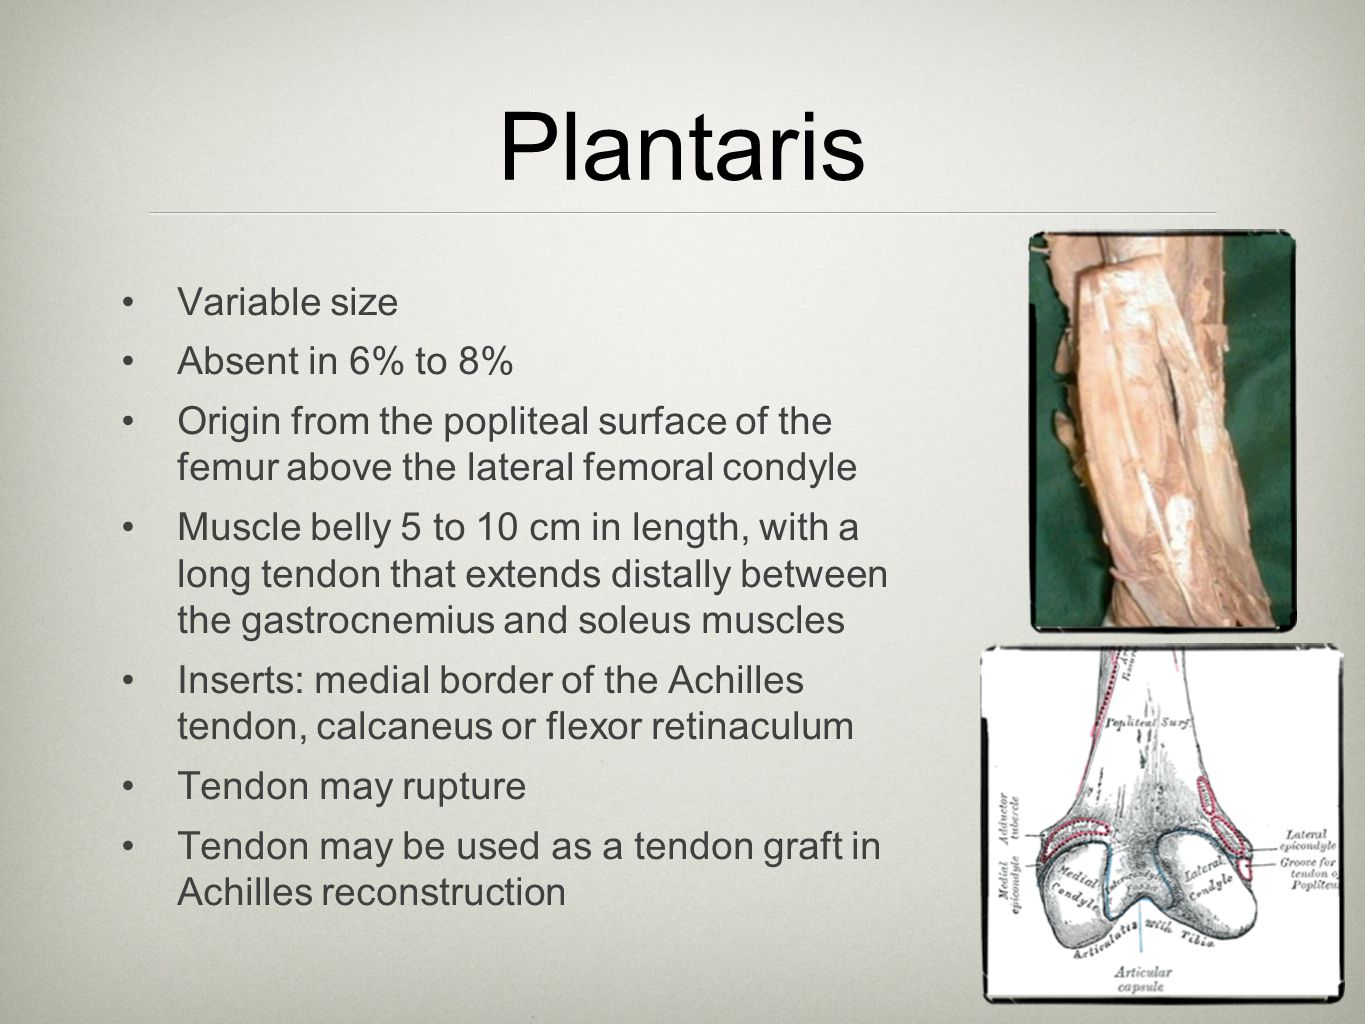 Plantaris Variable size Absent in 6% to 8%